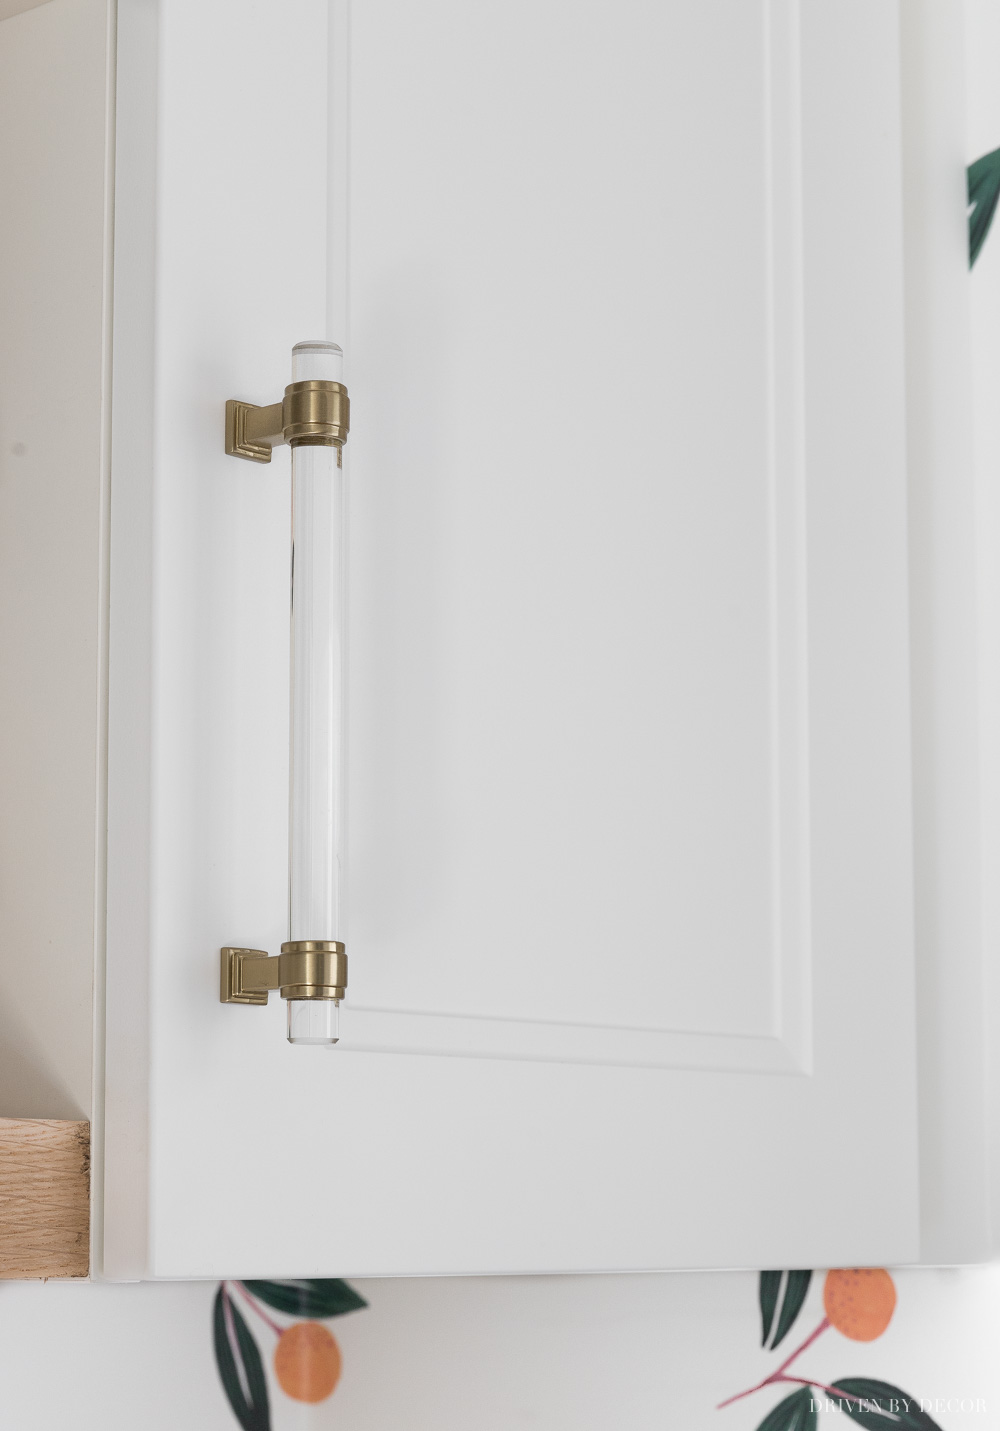 LOVE these acrylic cabinet pulls that totally dress up my Ikea laundry room cabinets!